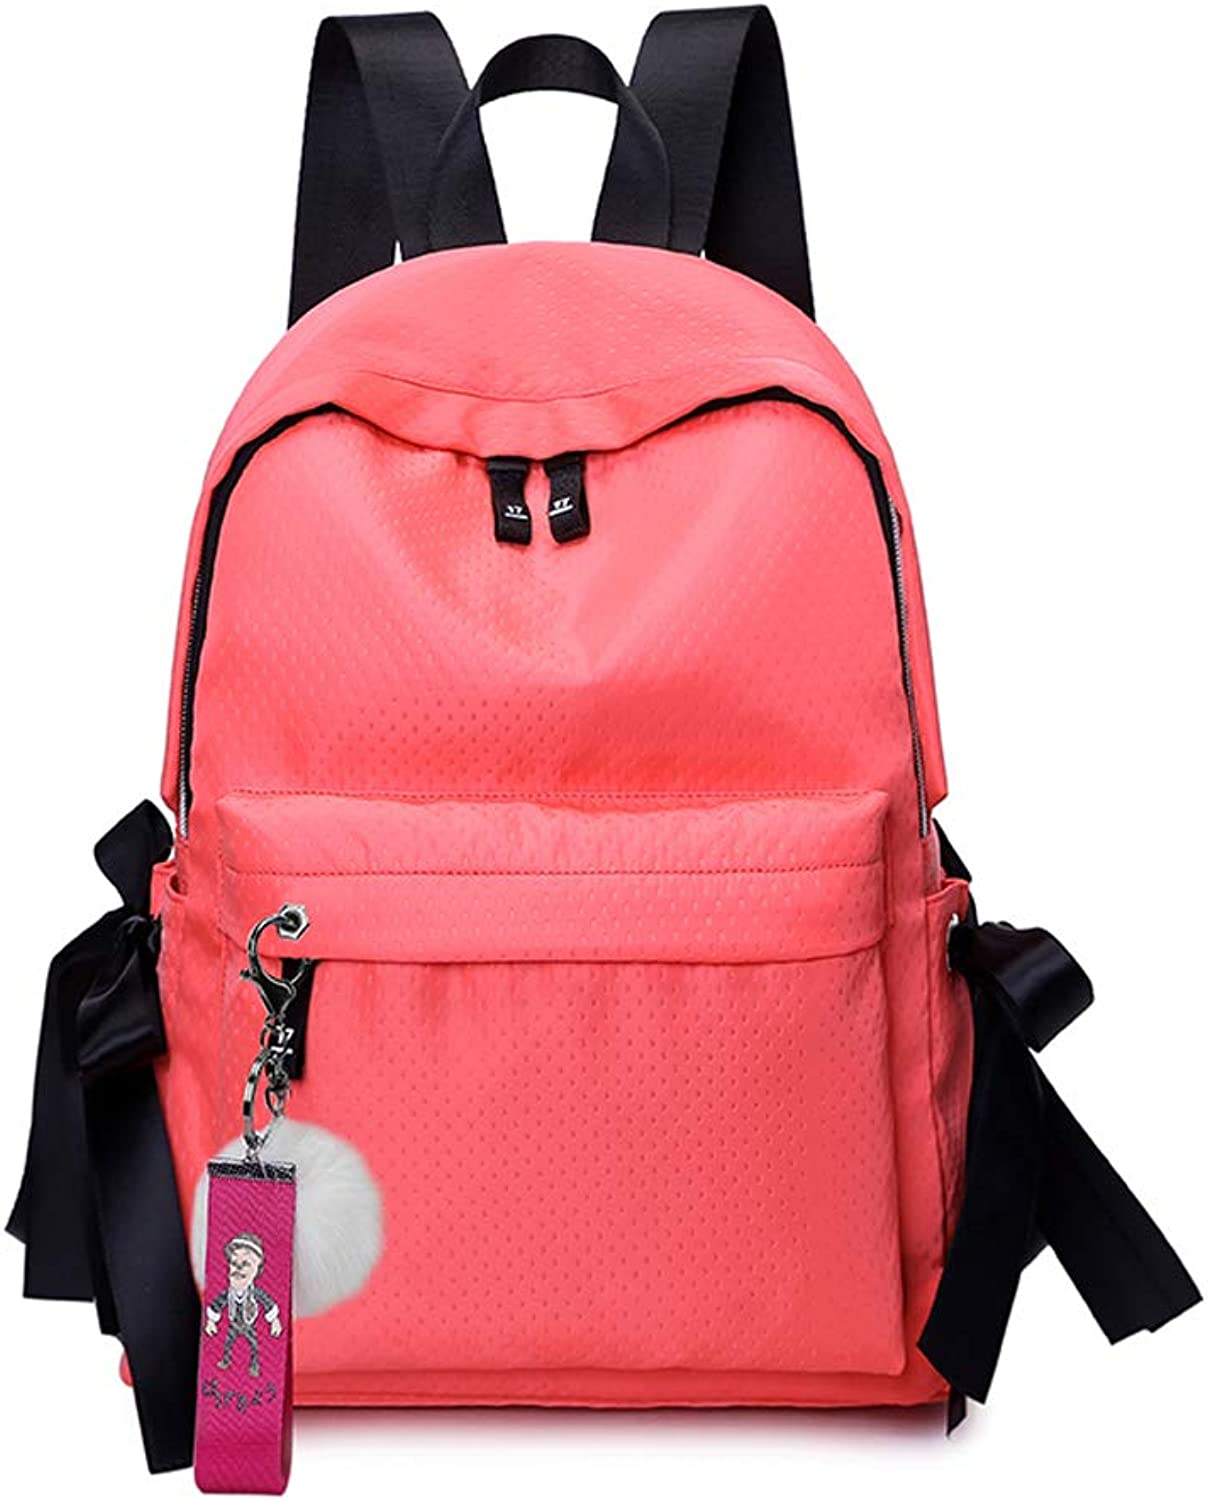 Backpack junior high school student bag leisure college wind backpack small fresh Korean version of the solid color female backpack,pink red